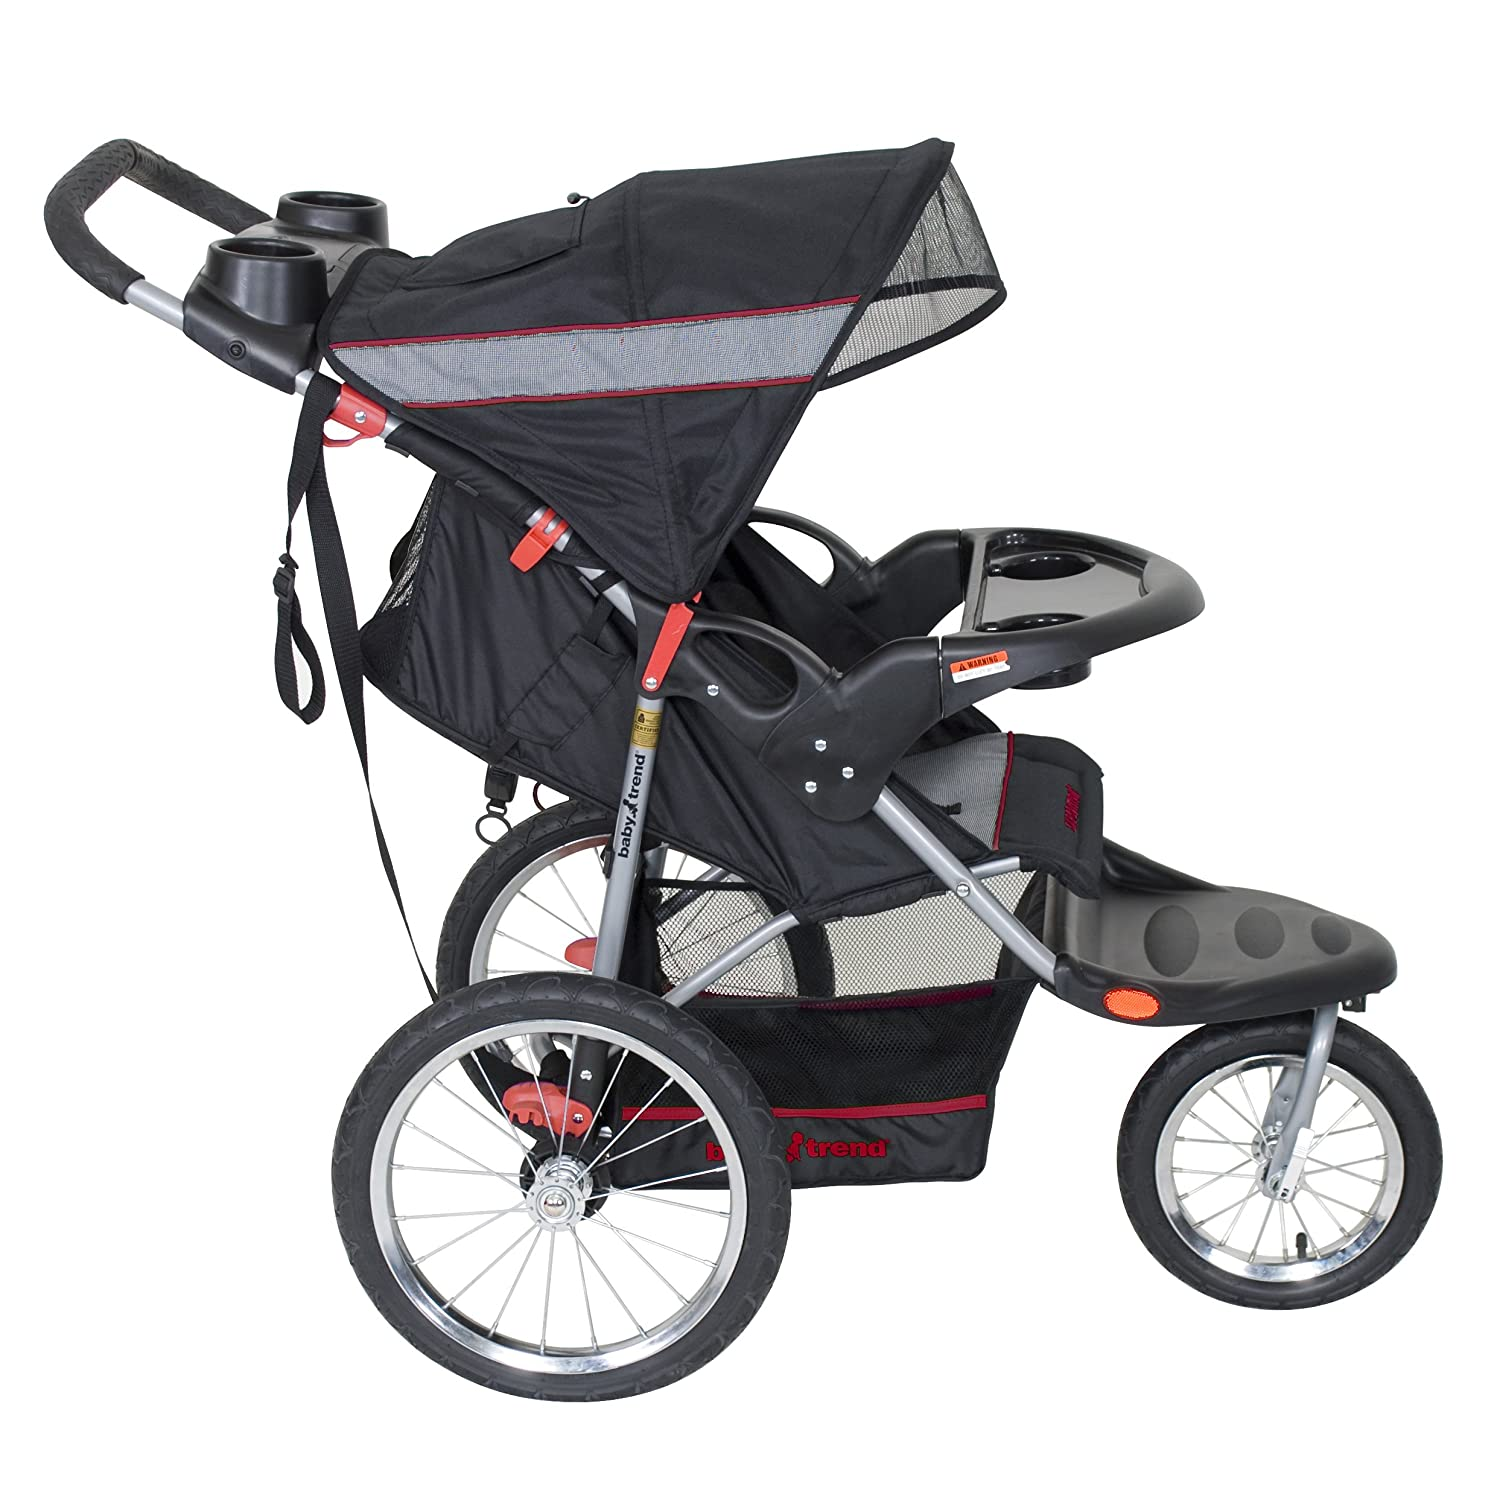 Amazon.com : Baby Trend Expedition LX Travel System, Millennium : Infant Car Seat Stroller Travel Systems